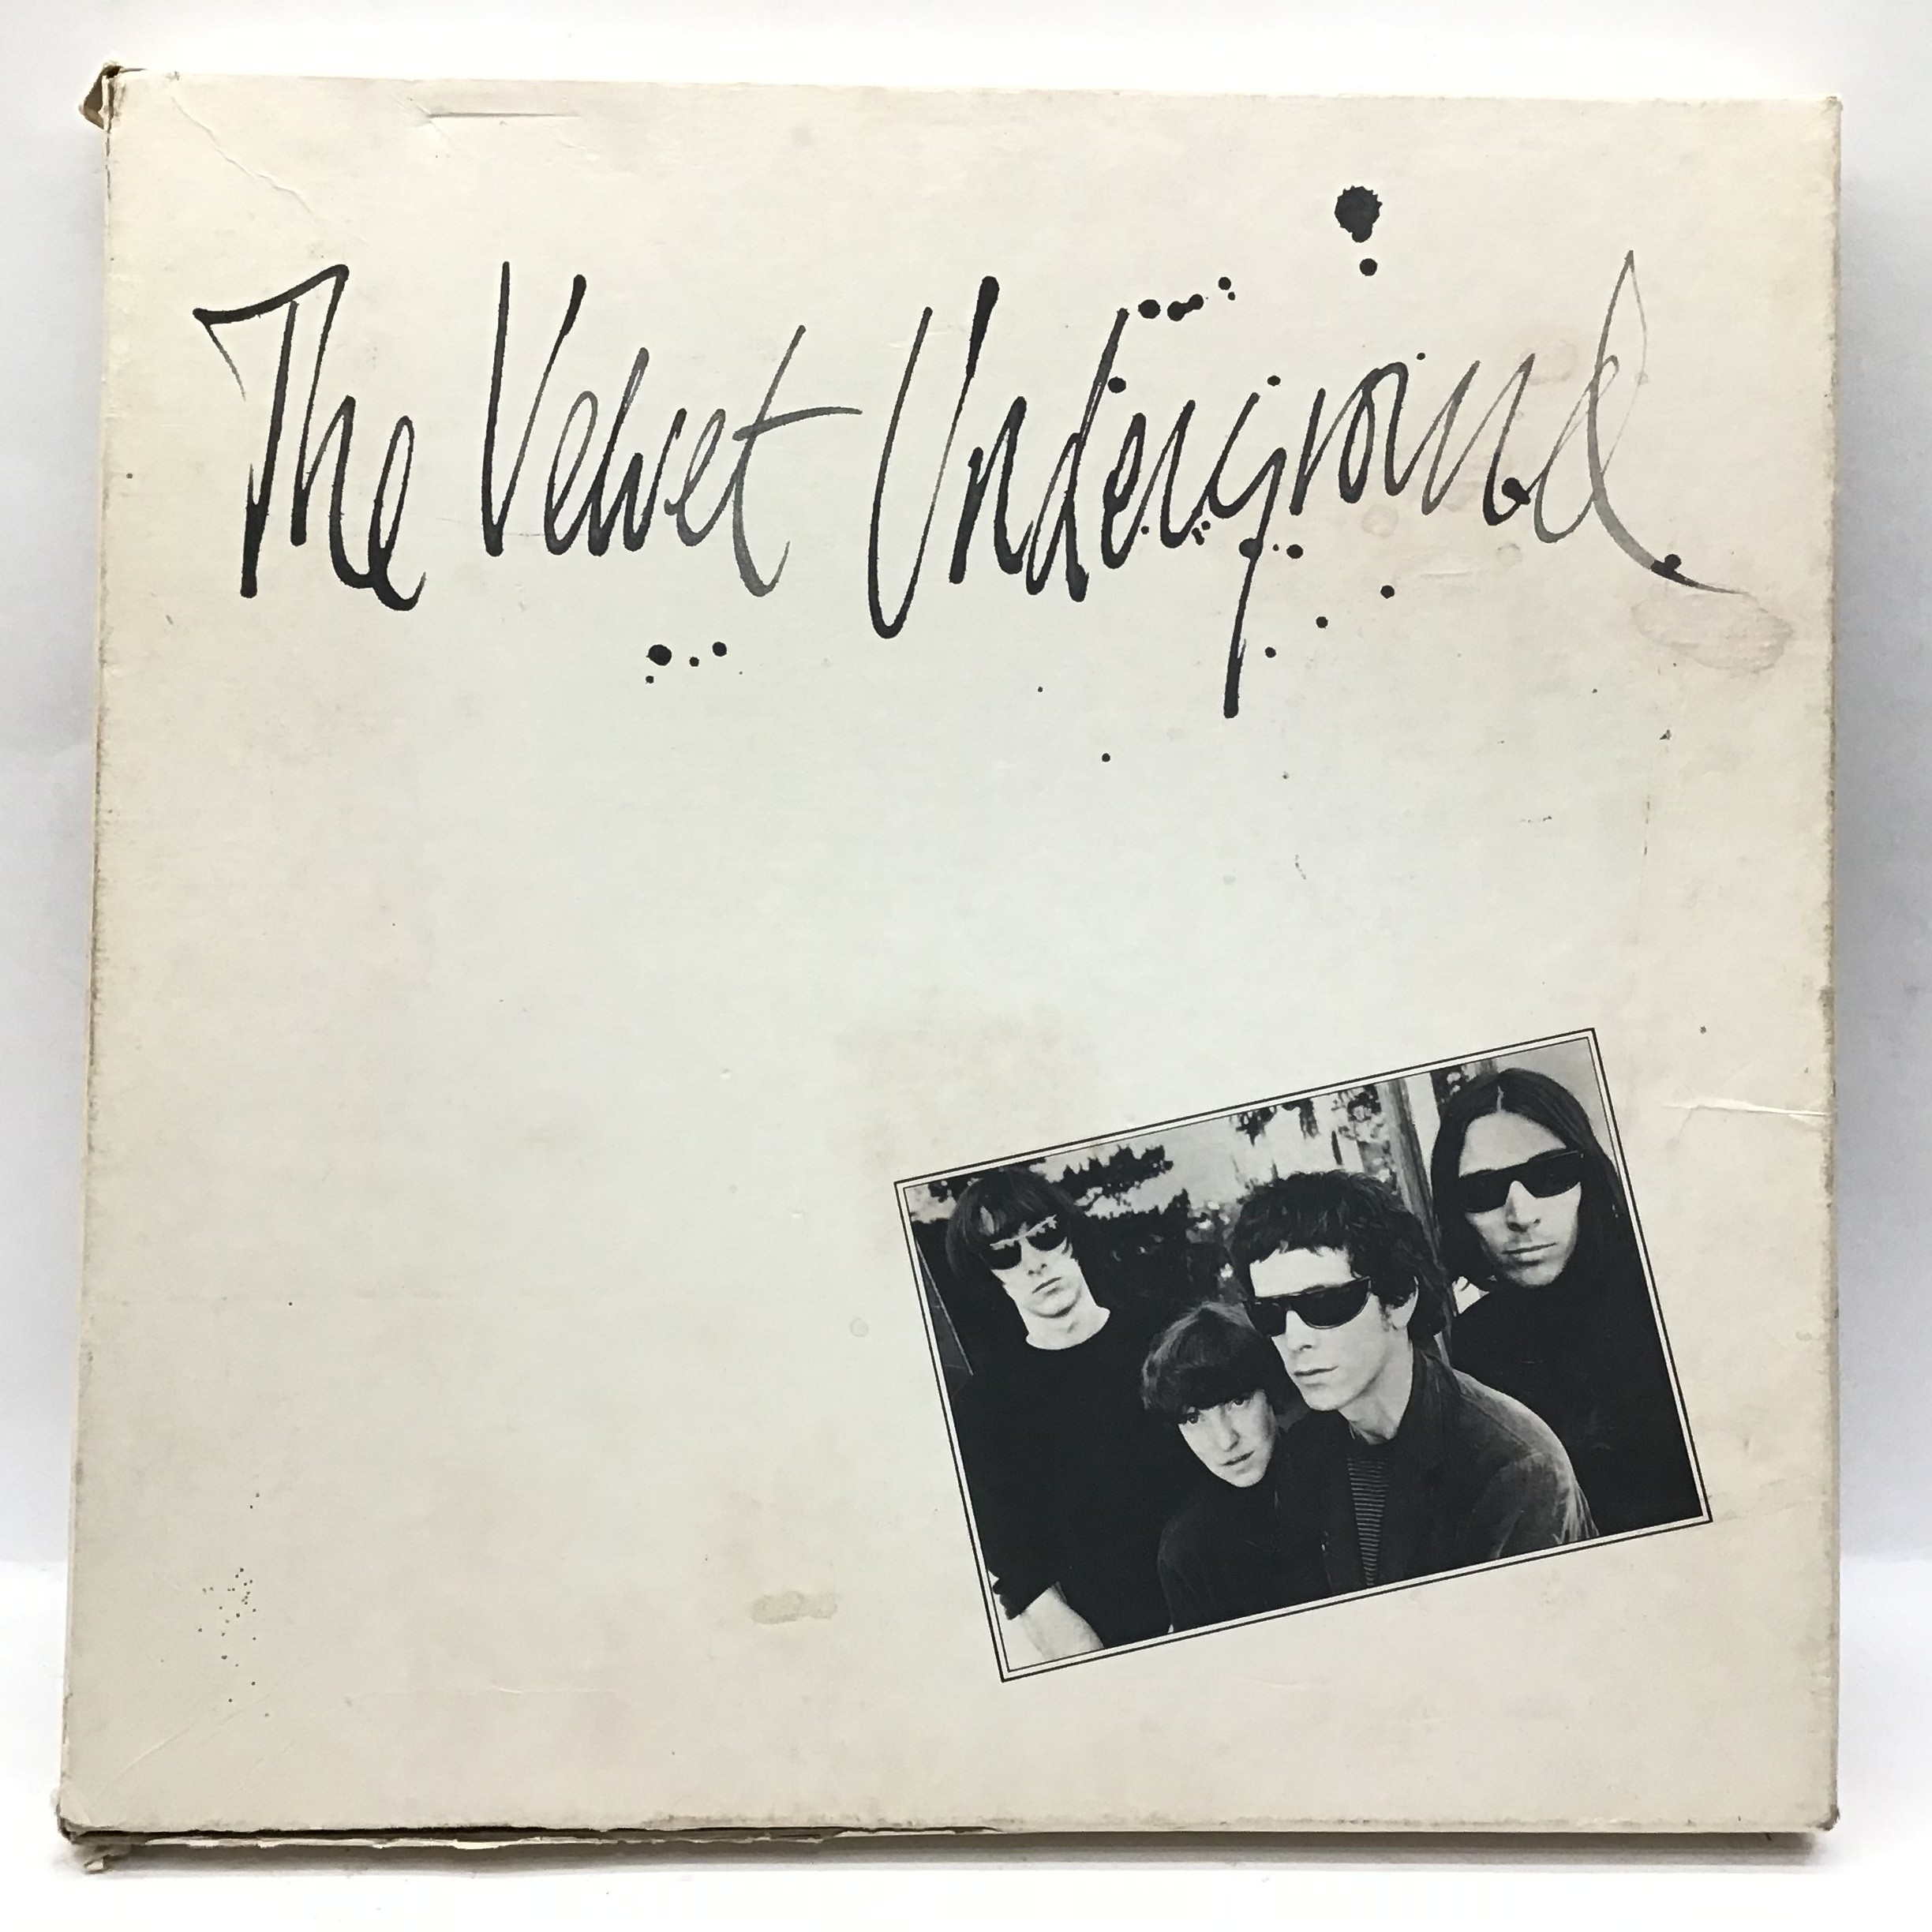 The Velvet Underground Vinyl 5 LP Box Set from 1986 complete with booklet and info sheet. Found here